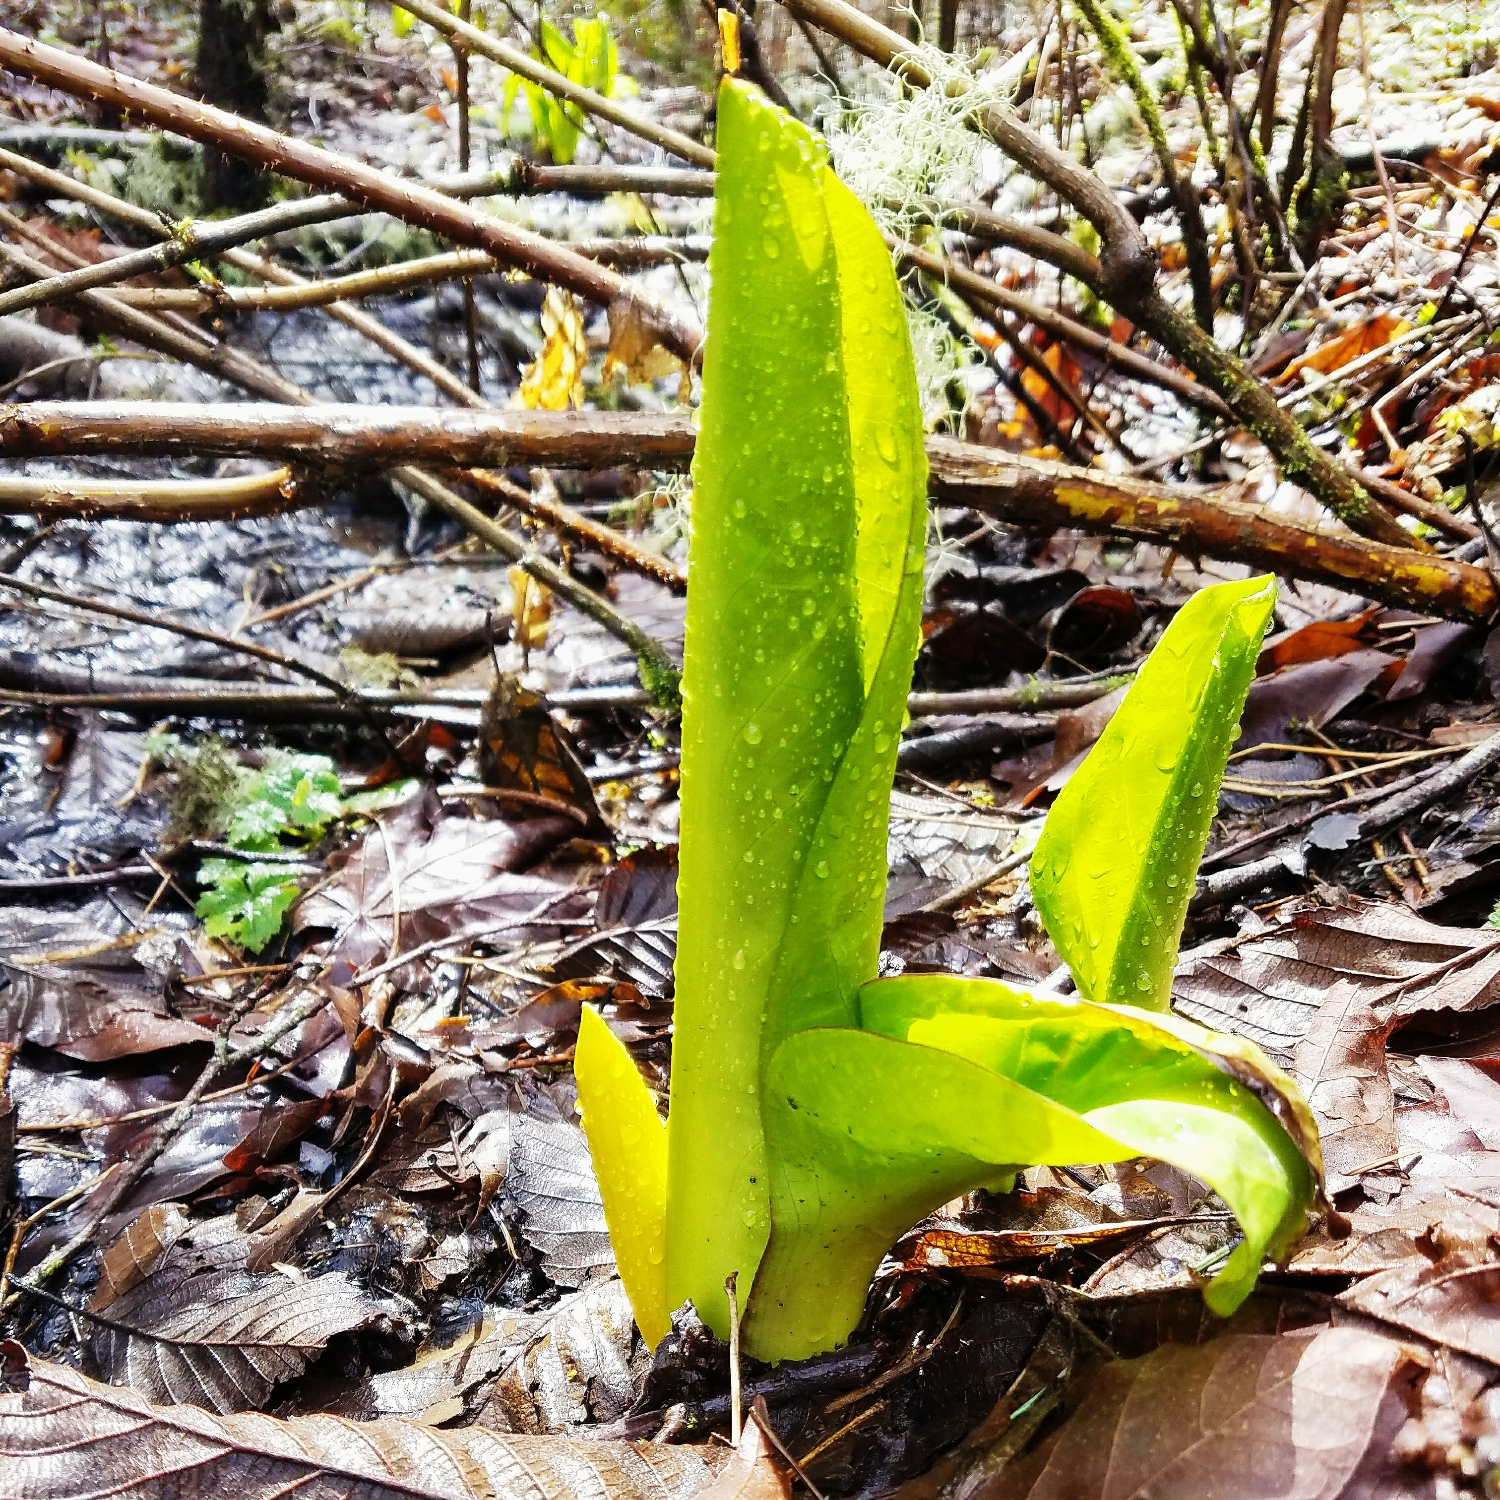 Favorite signs of spring #2: skunk cabbage - sunny and oh so stinky